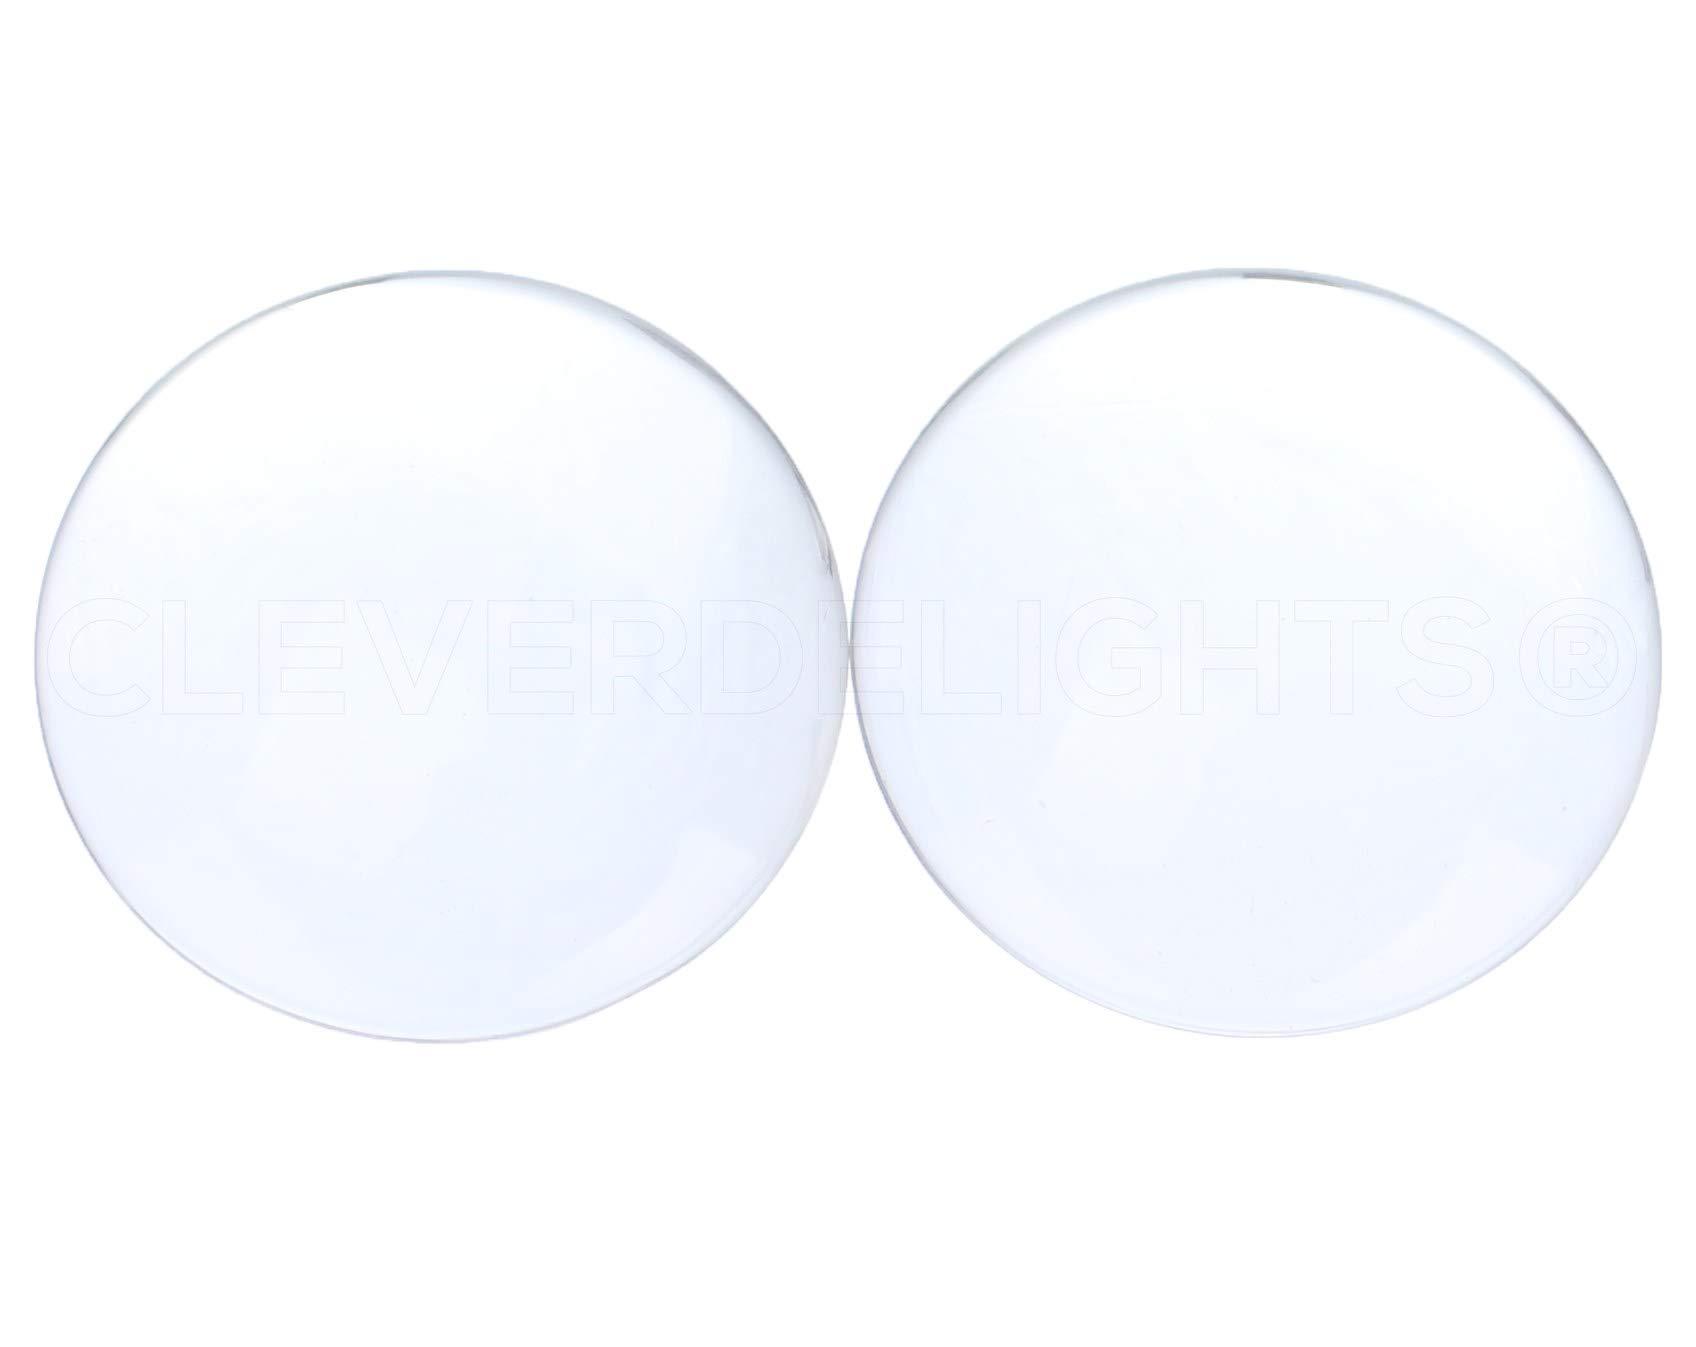 20 Pack - CleverDelights 3'' Round Glass Cabochons - 5/8'' Thick - Clear Magnifying Glass Dome Cabs by CleverDelights